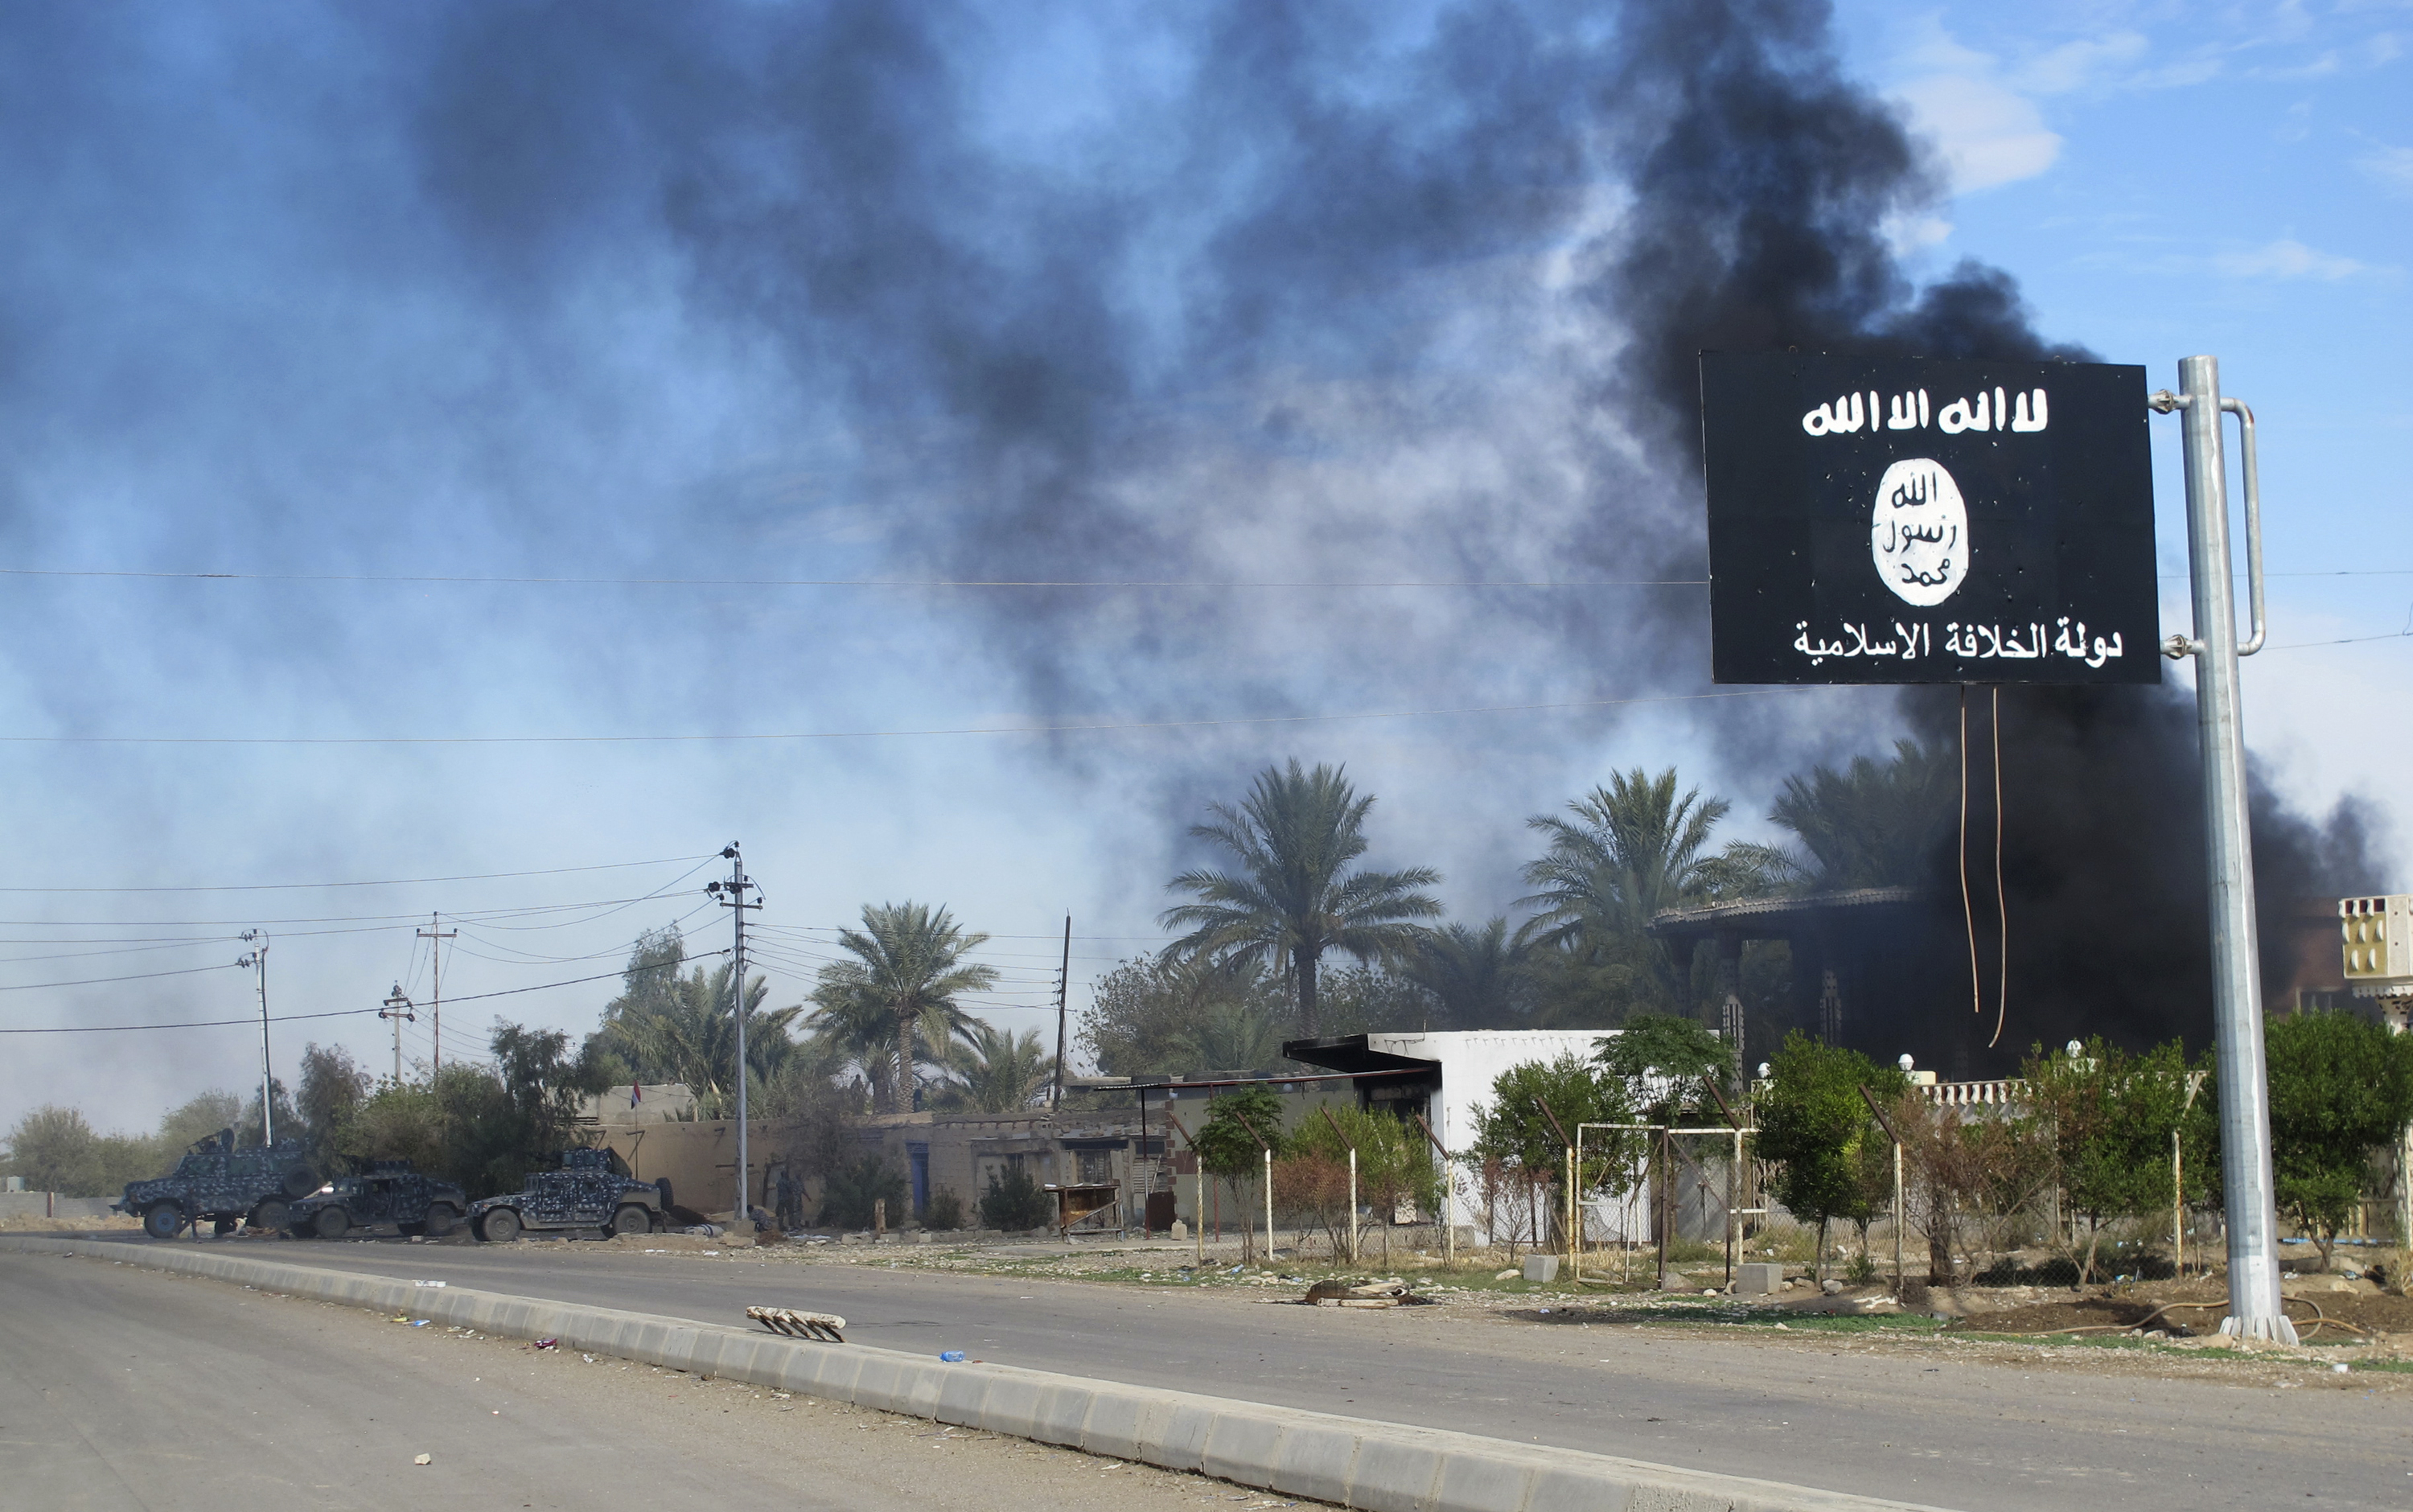 Smoke raises behind an Islamic State of Iraq and Greater Syria flag after Iraqi security forces and Shi'ite fighters took control of Saadiya in Diyala province from ISIS militants on Nov. 24, 2014